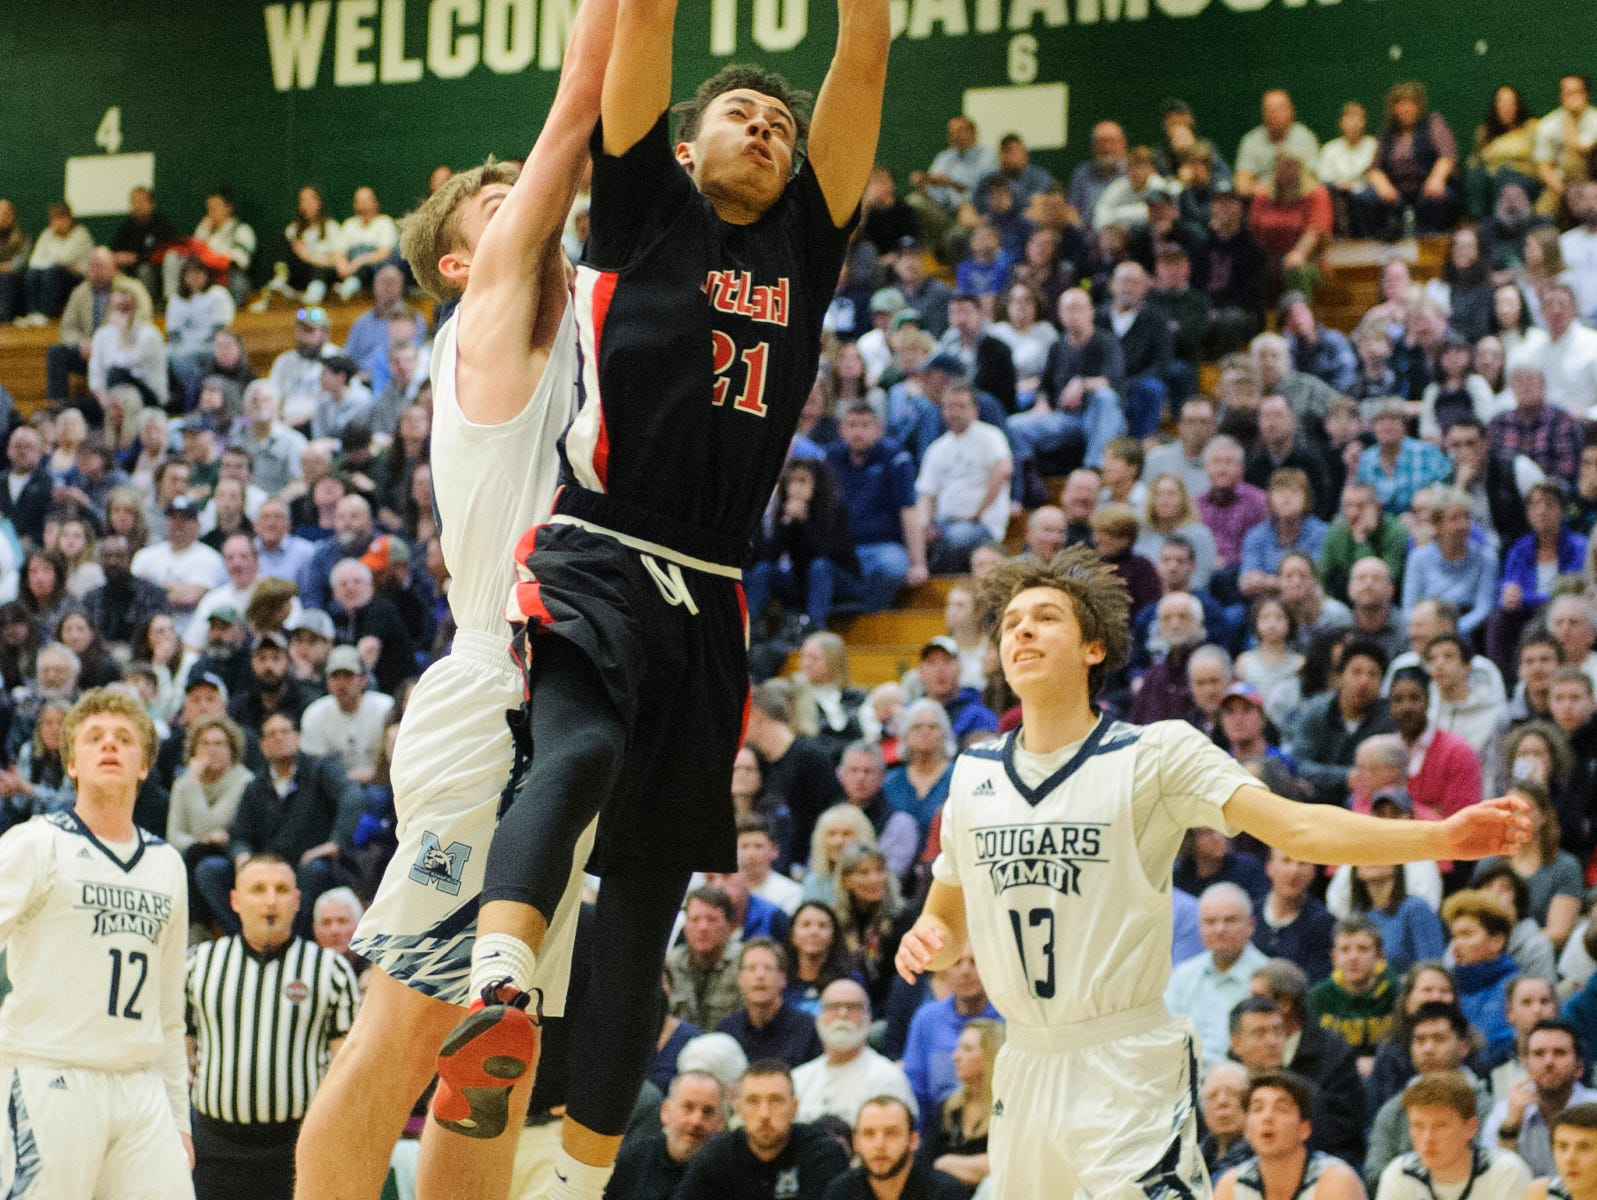 Rutland's Jamison Evans (21) leaps for a lay up during the boys DI semi final basketball game between the Rutland Raiders and the Mount Mansfield Cougars at Patrick Gym on Monday night March 11, 2019 in Burlington, Vermont.